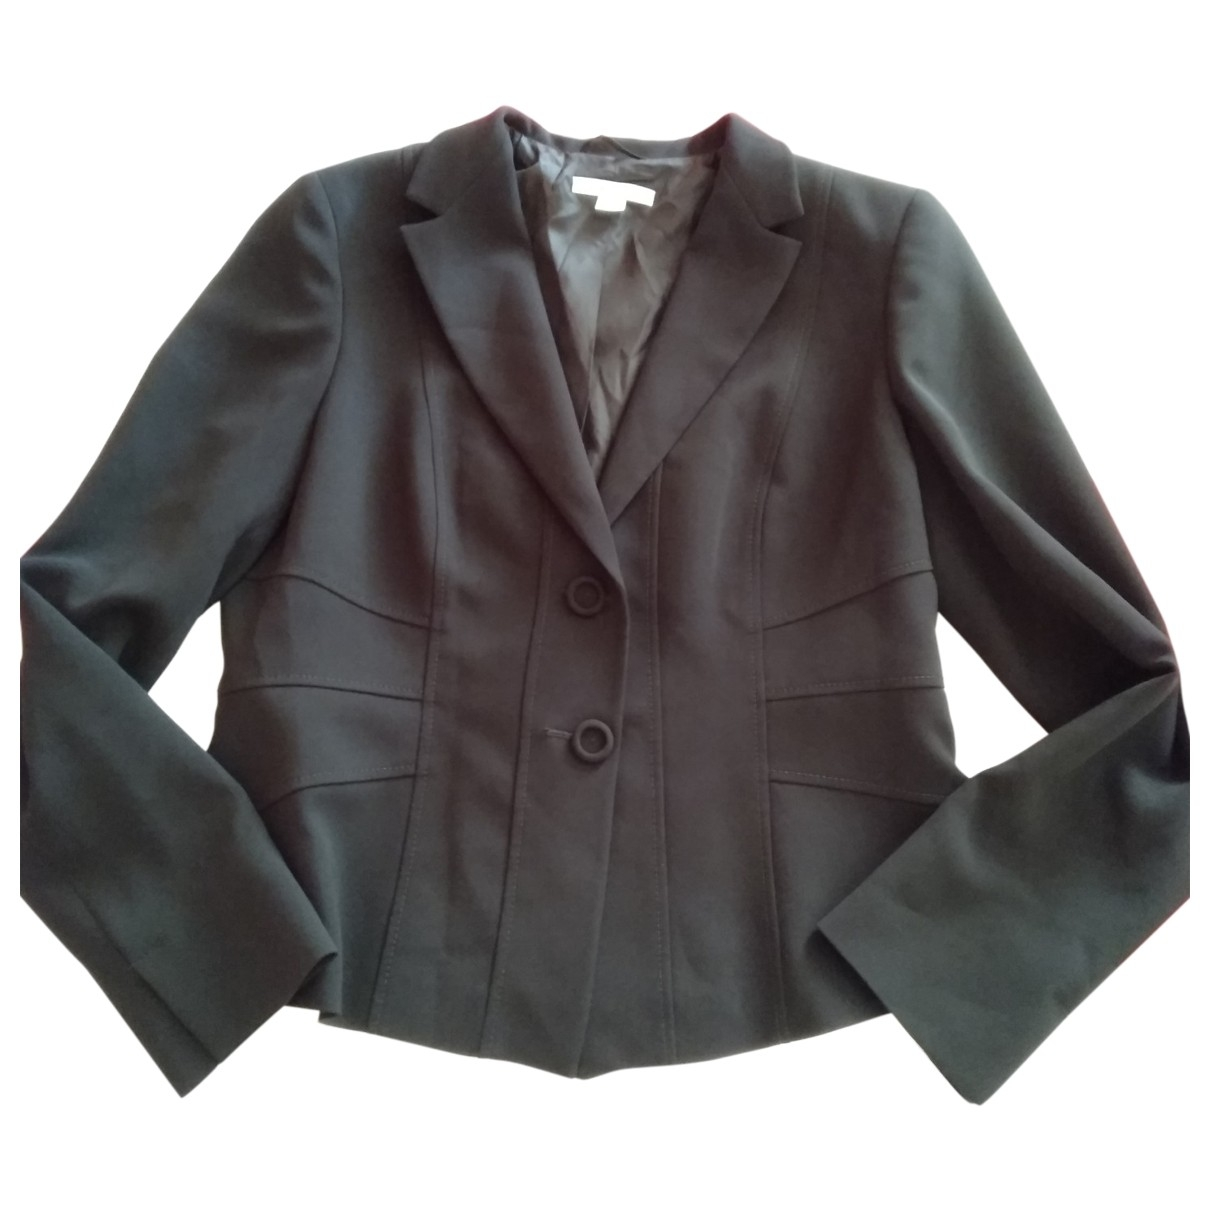 Marella \N Black jacket for Women 50-52 IT